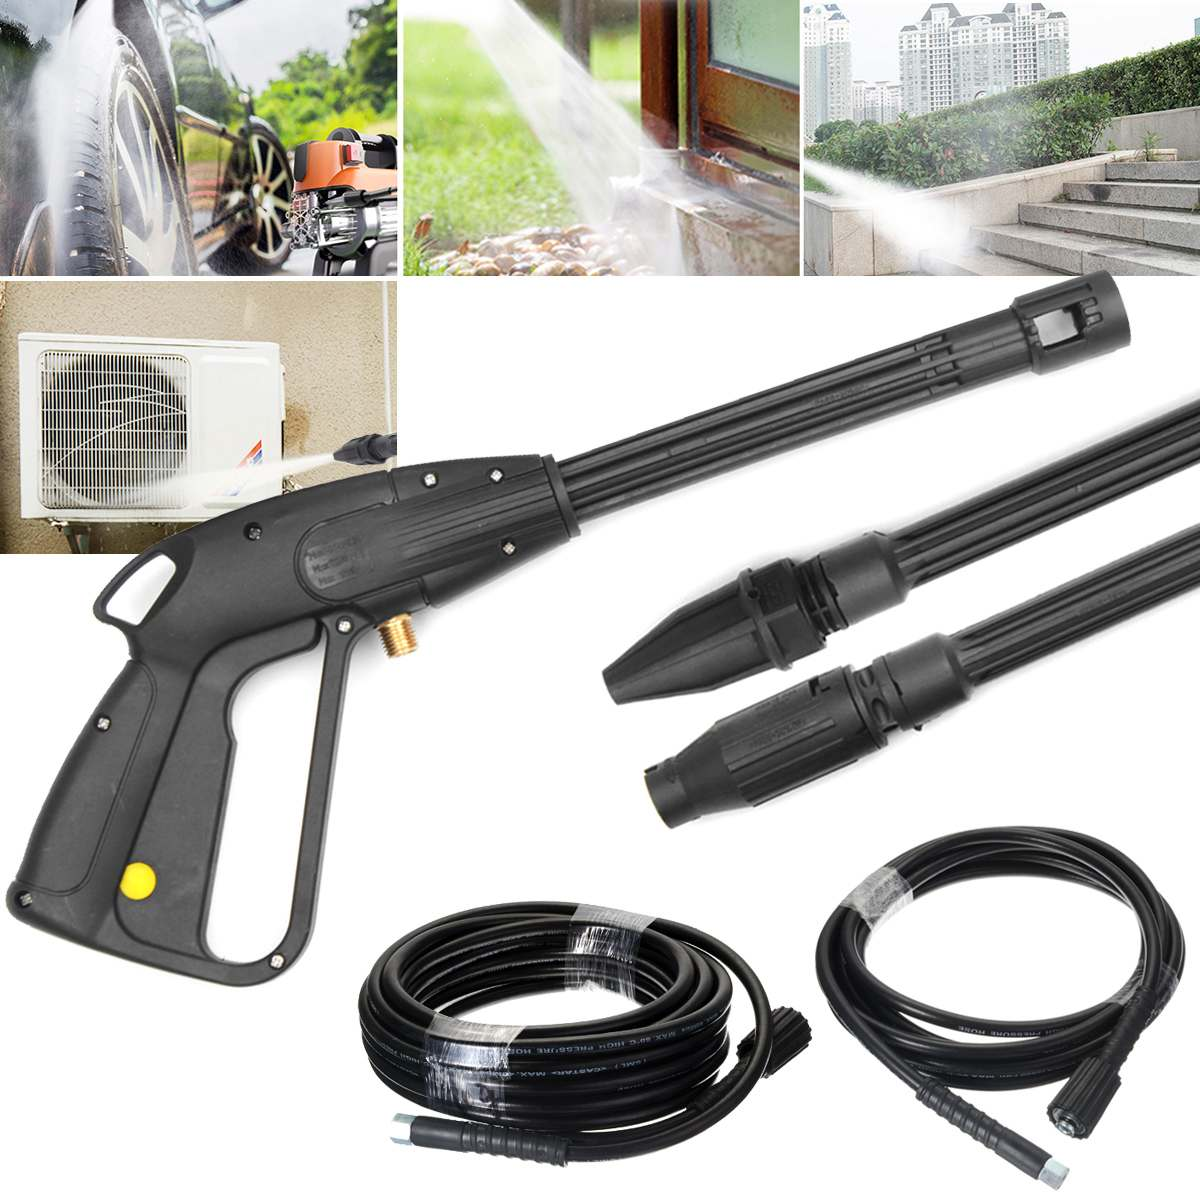 New High Pressure Power Washer Spray Nozzle Adjust Water-Gun Lance/5/10M Washer Extension Jet Hose M22XM14 Connector Replacement(China)